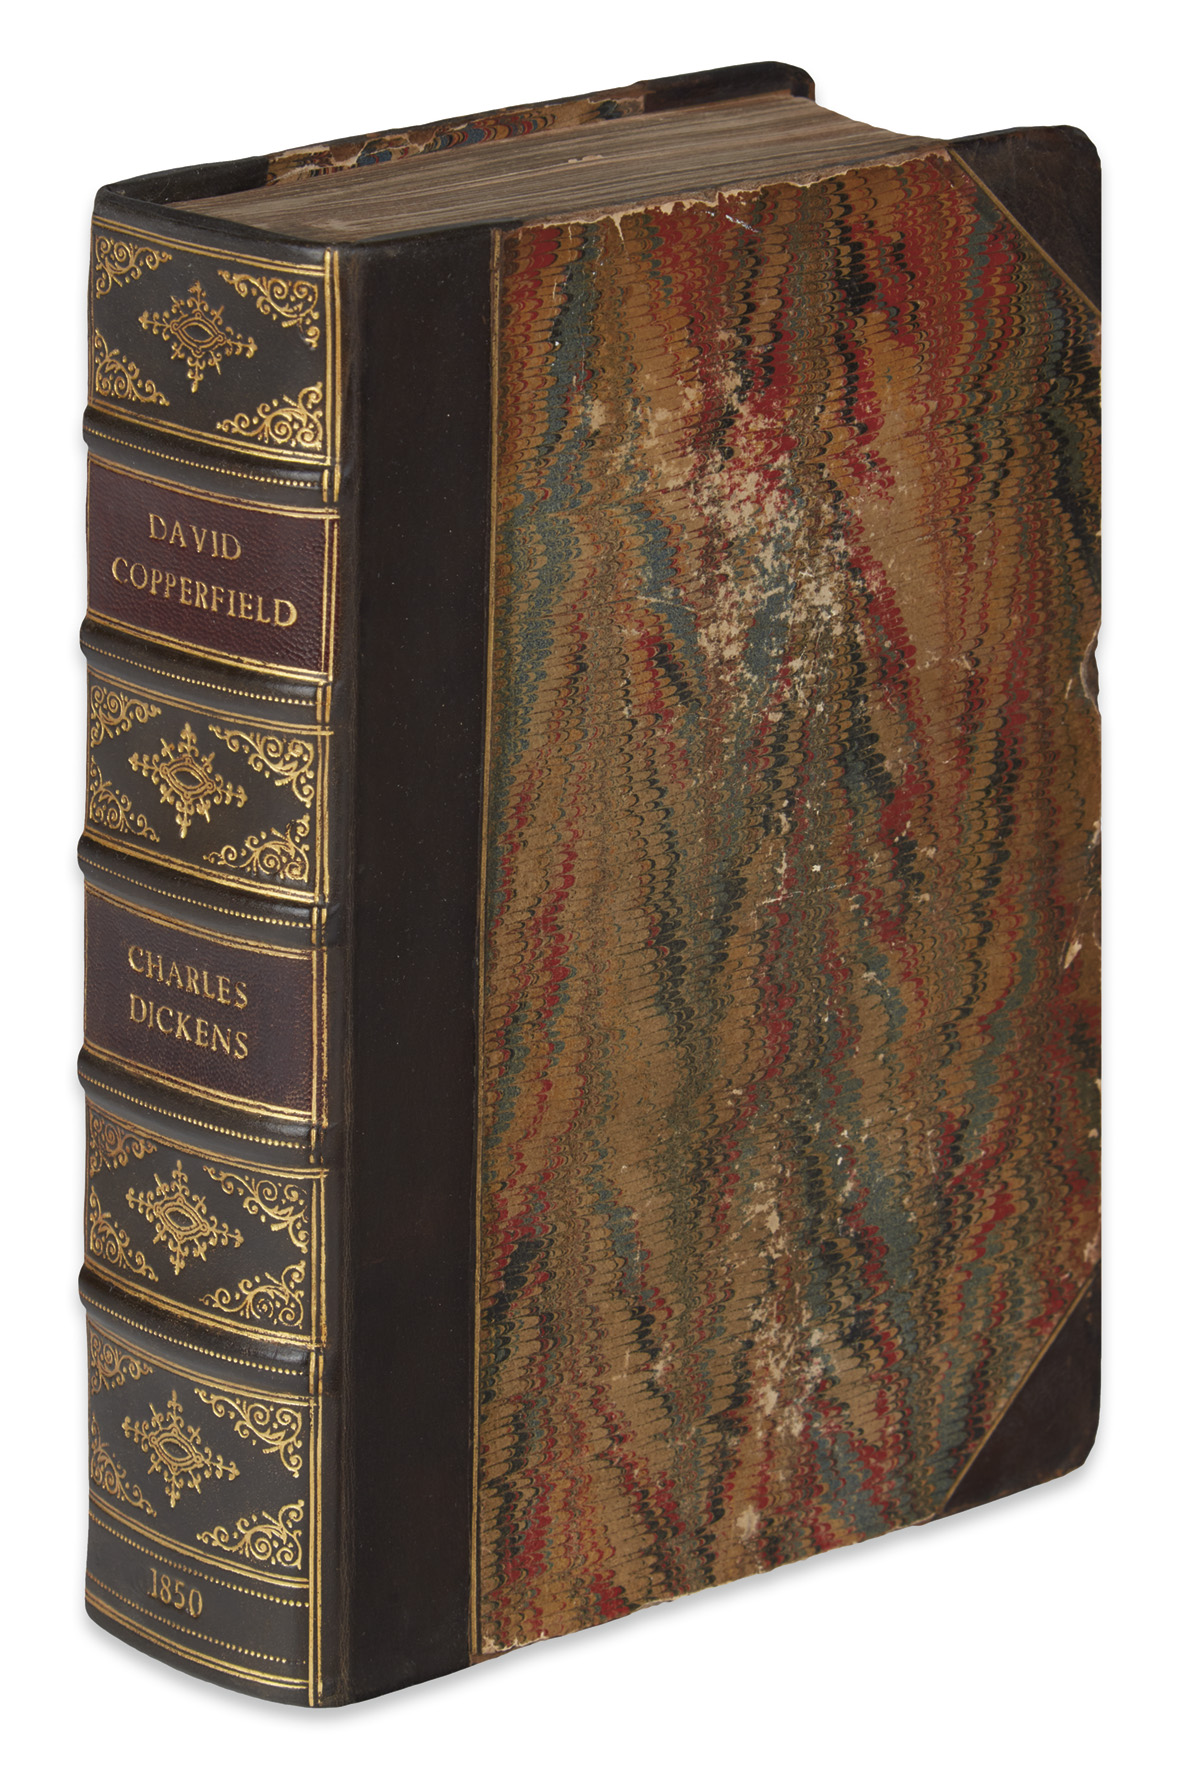 DICKENS-CHARLES-The-Personal-History-of-David-Copperfield